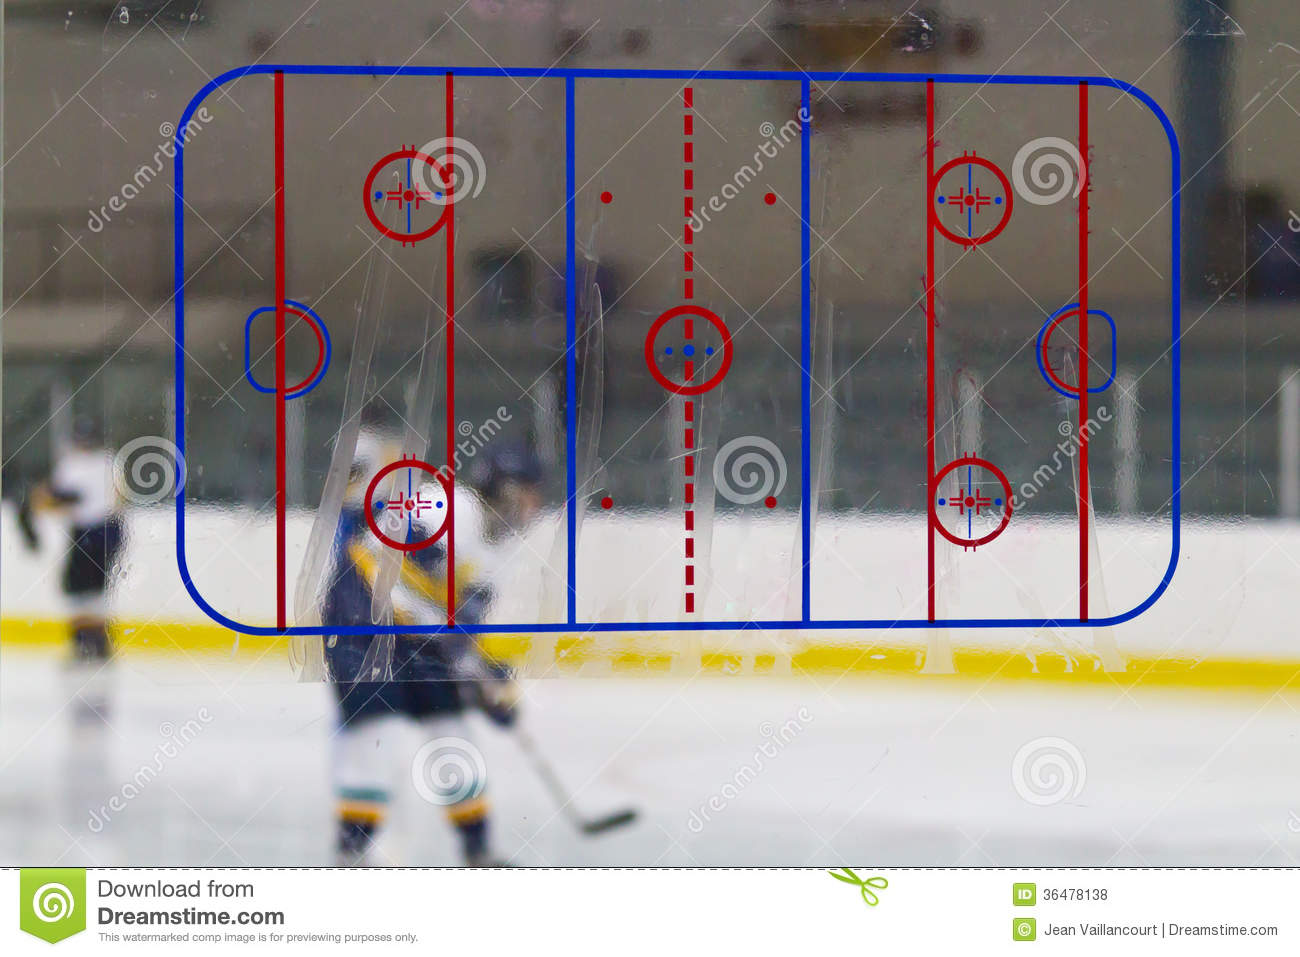 hight resolution of rink diagram at an ice hockey arena rink diagram on the glass at an ice